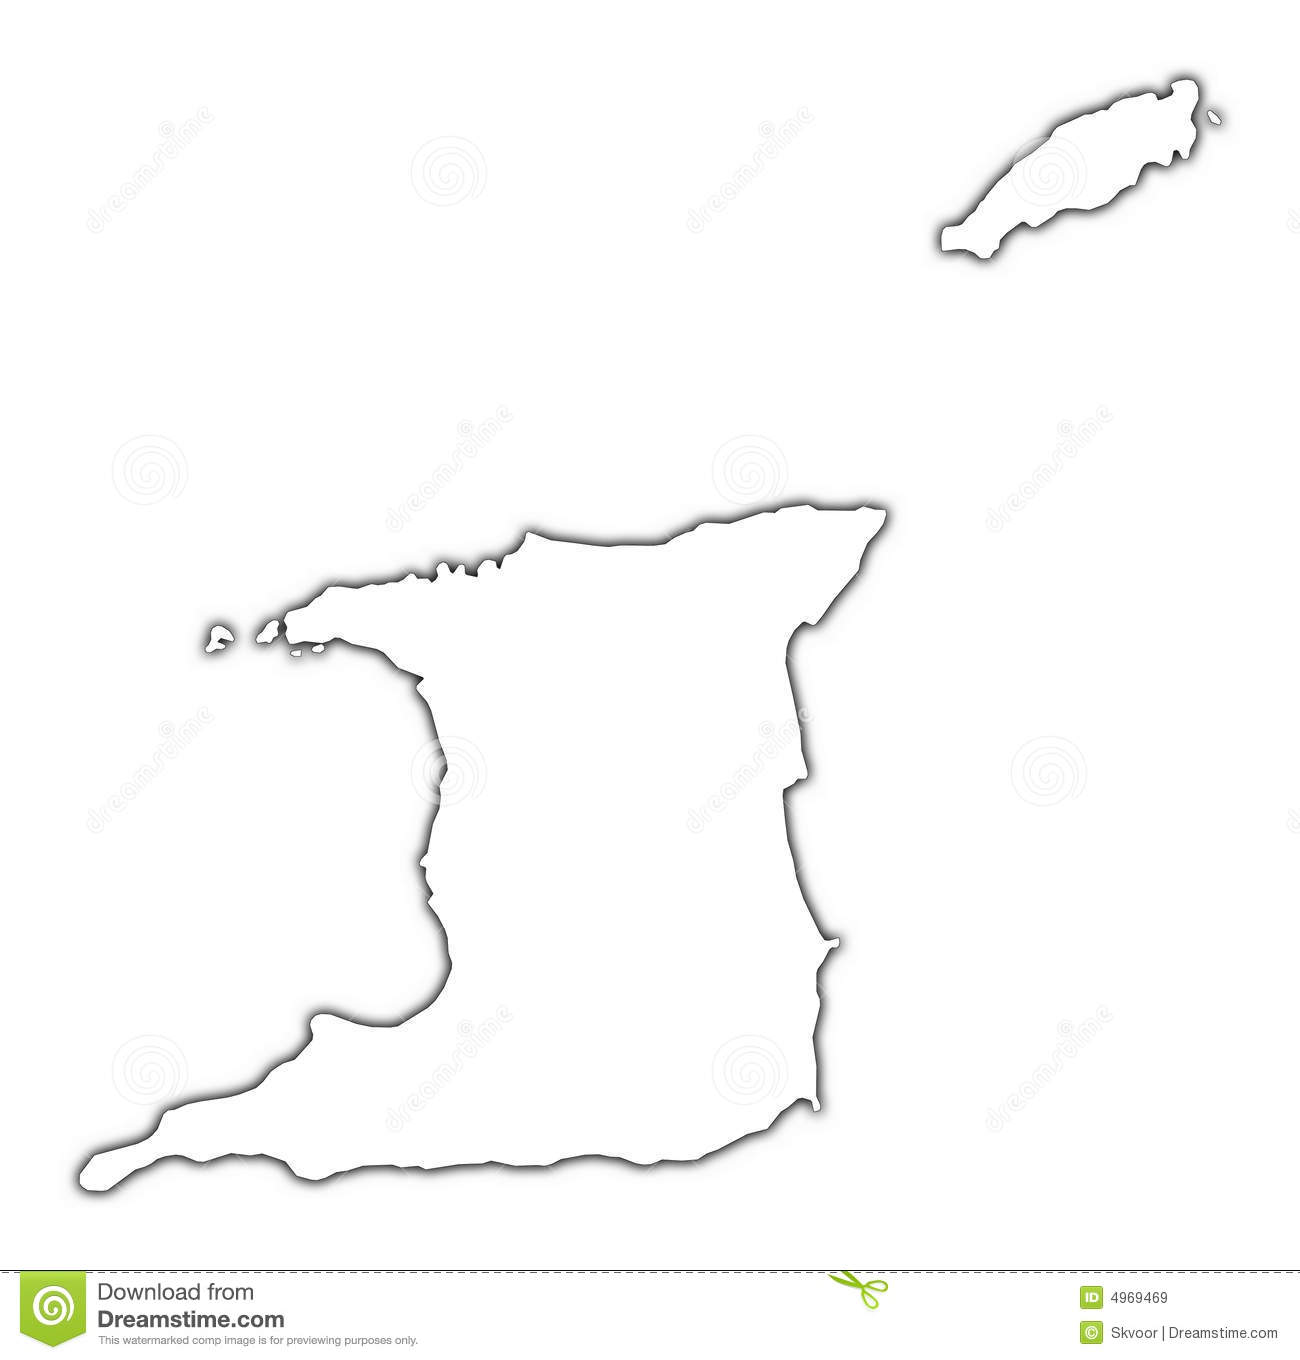 Trinidad and Tobago map stock illustration. Illustration of raster ...